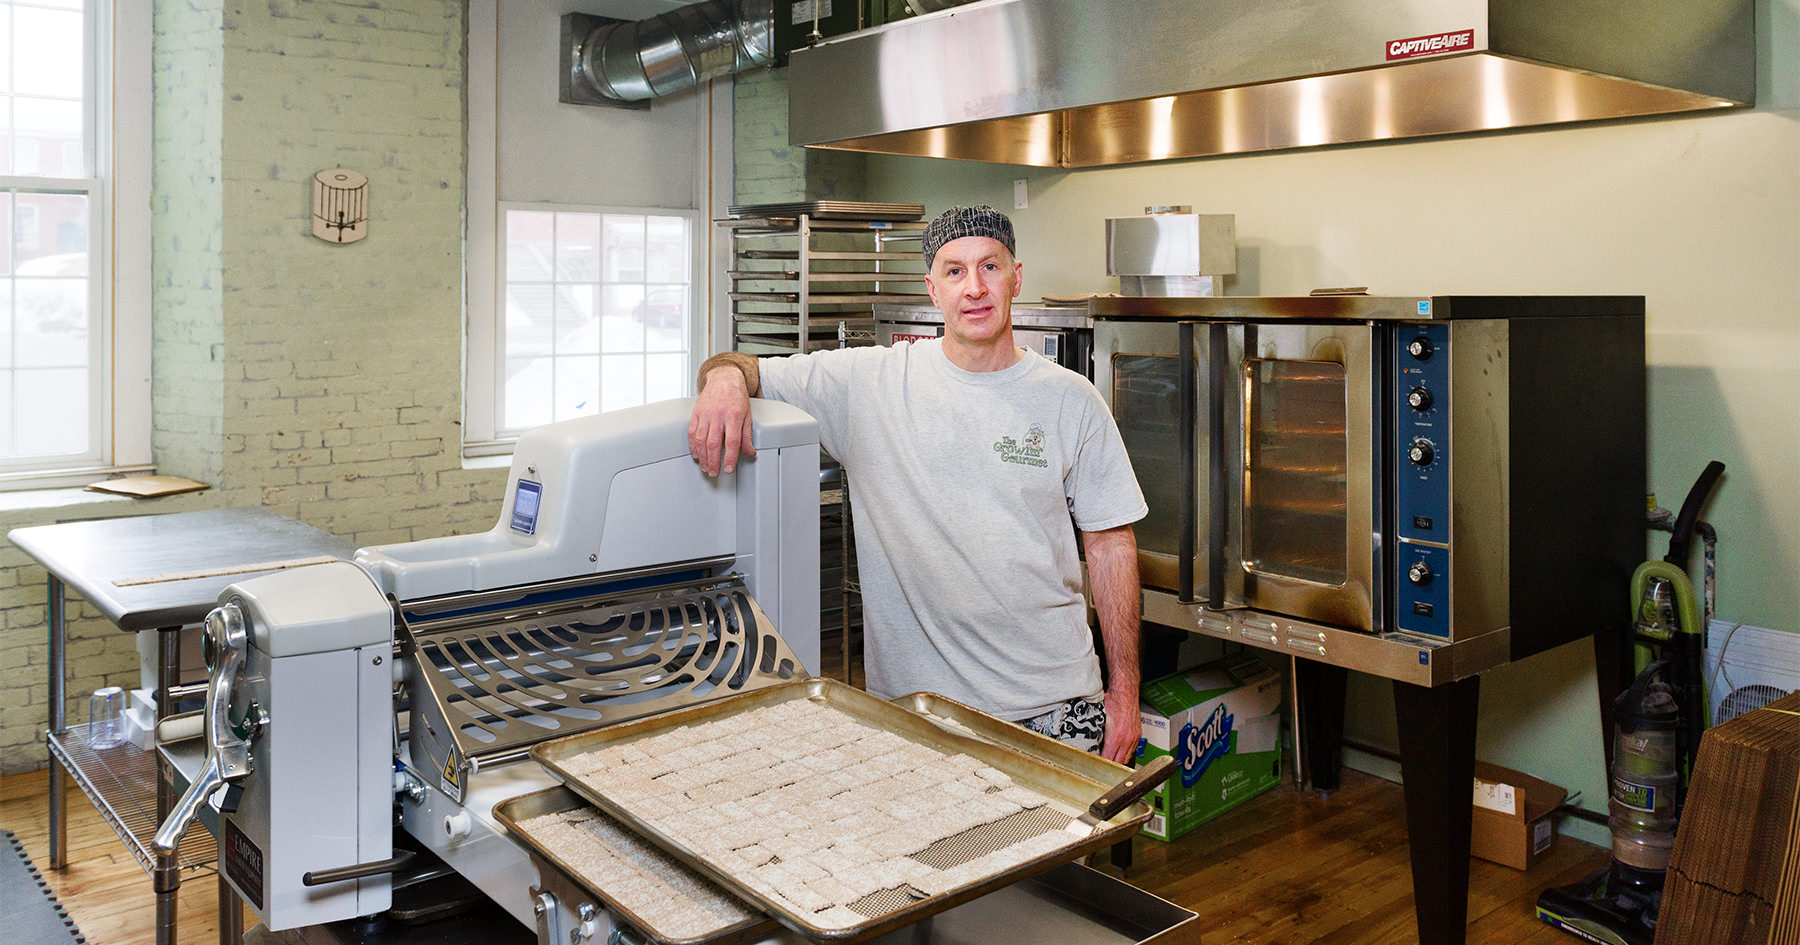 Steve Harmon, chef and owner of Growlin Gourmet stands next to a fresh batch of dog treats in his kitchen at the Pepperell Mill Campus, photographed by Portland Headshot.